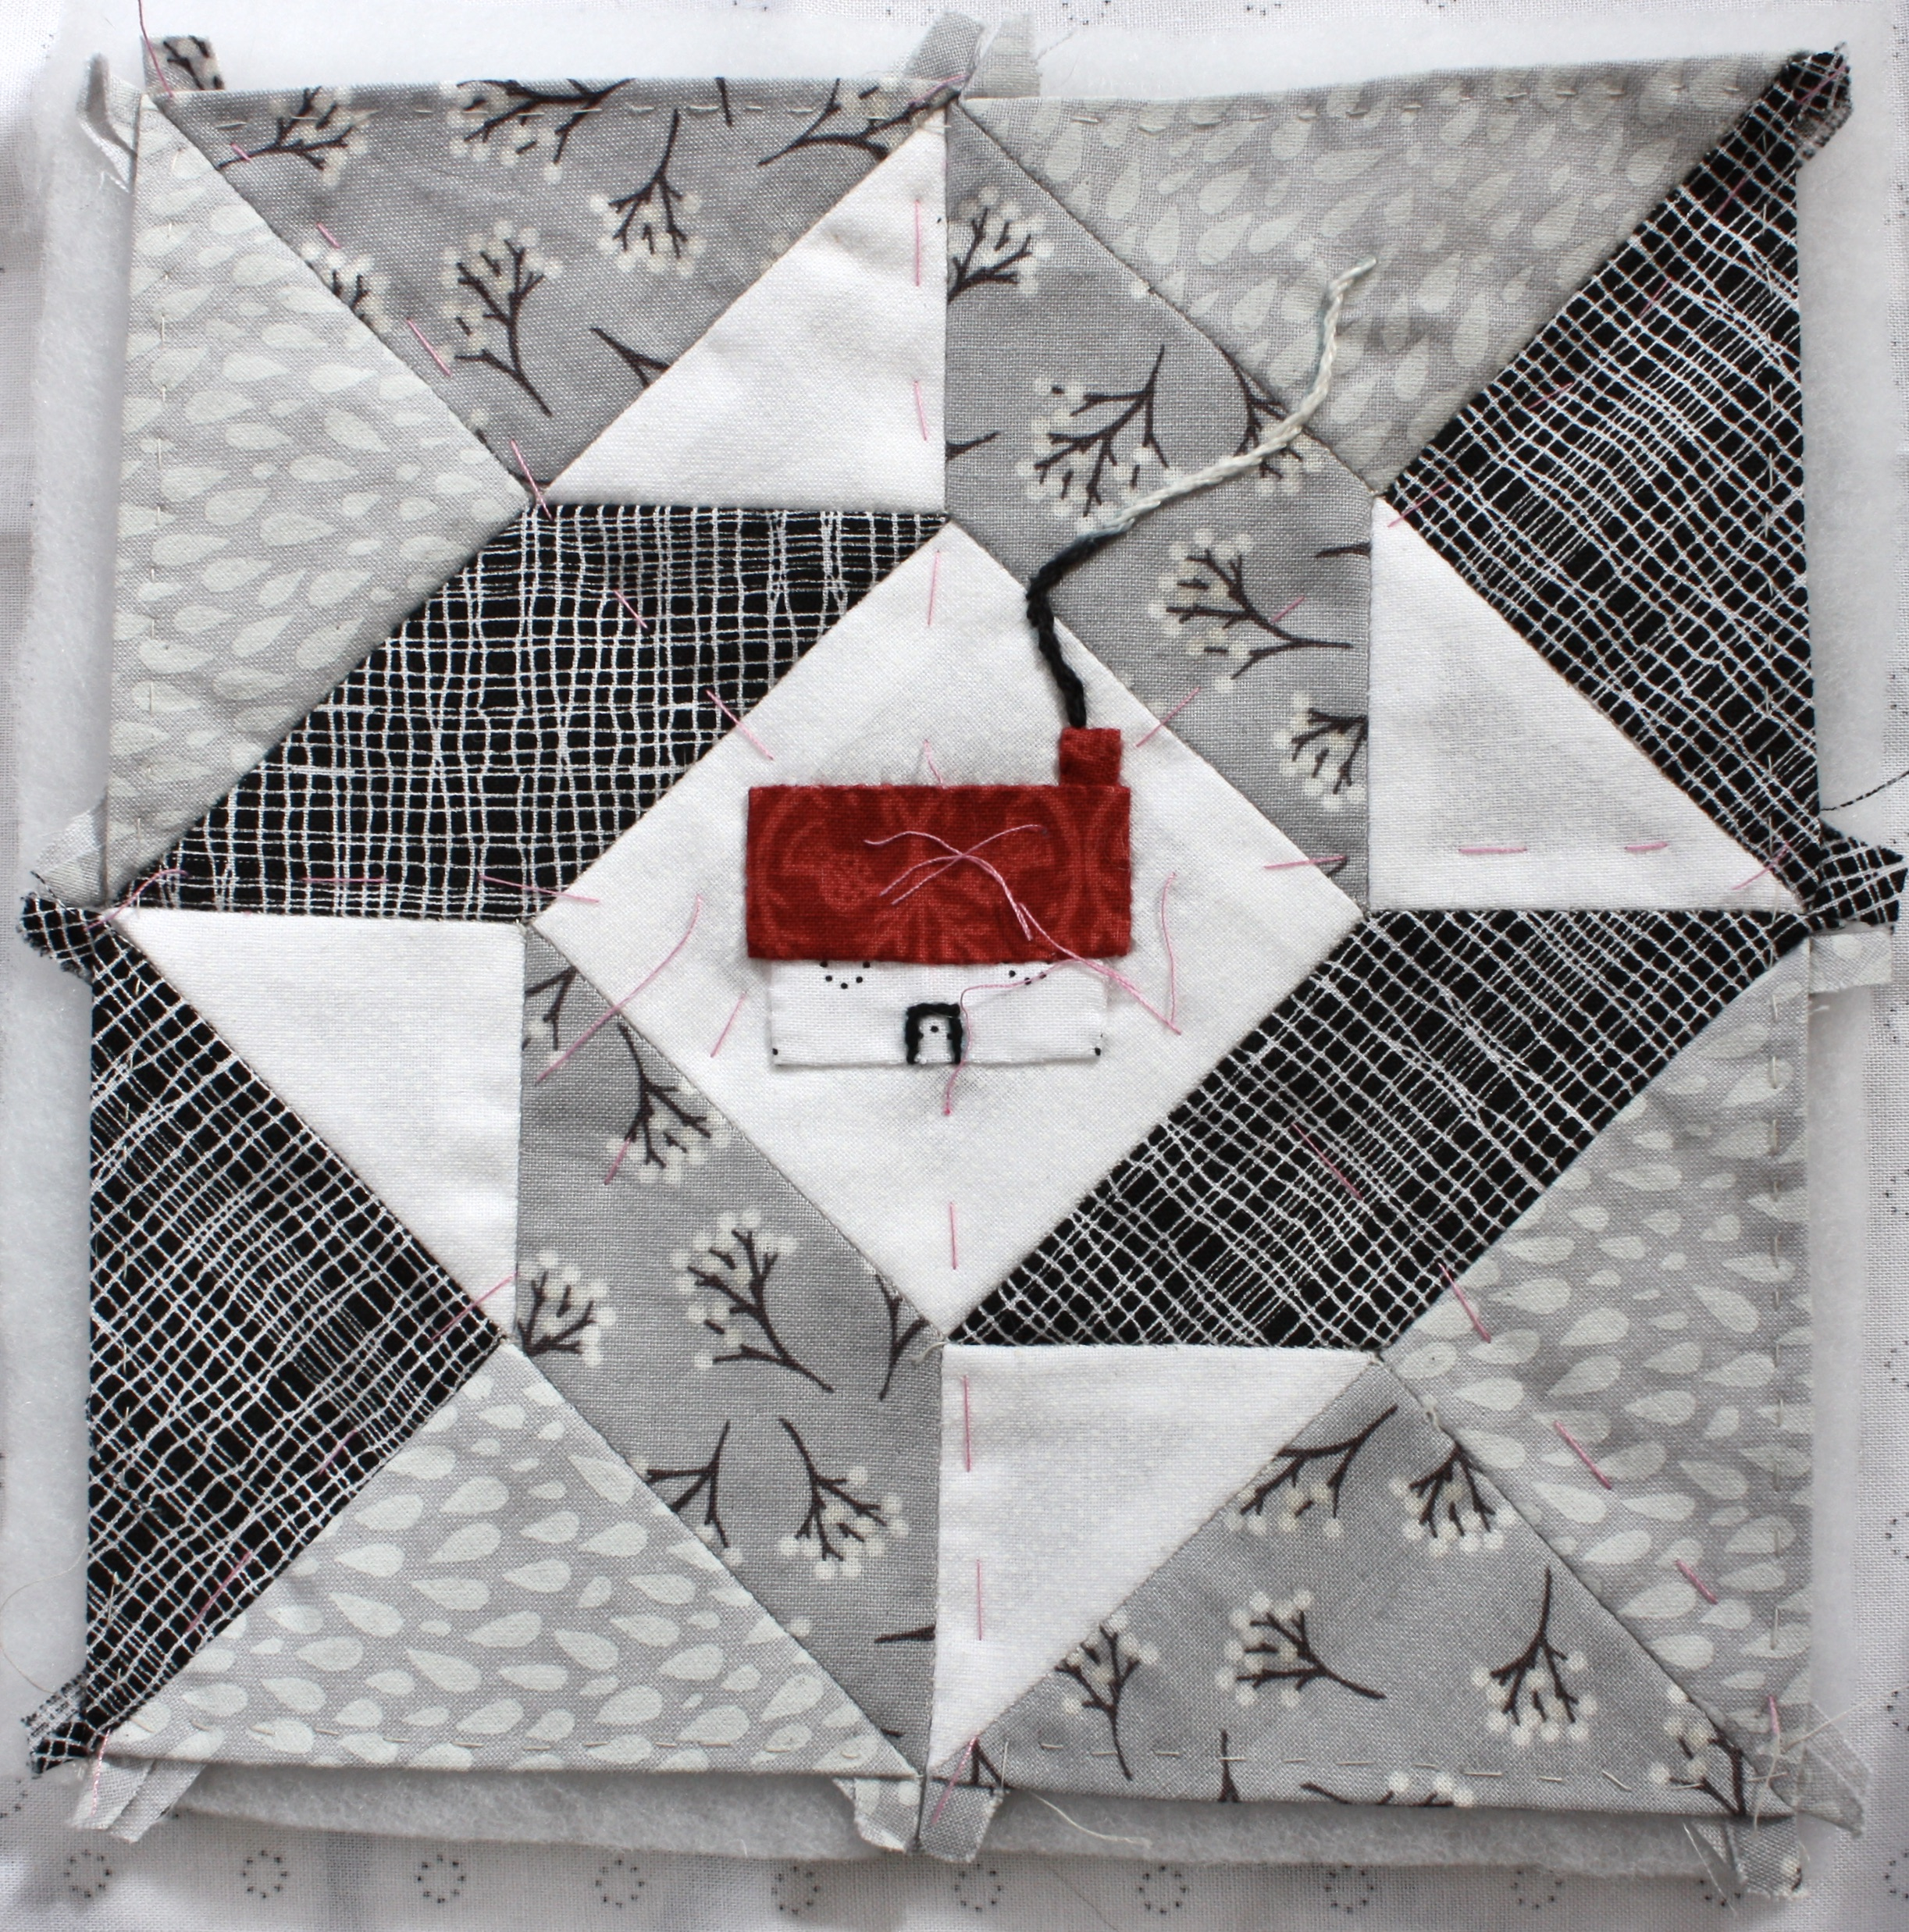 About the Town Stitching Club Embroidery and EPP Mini Quilt Project